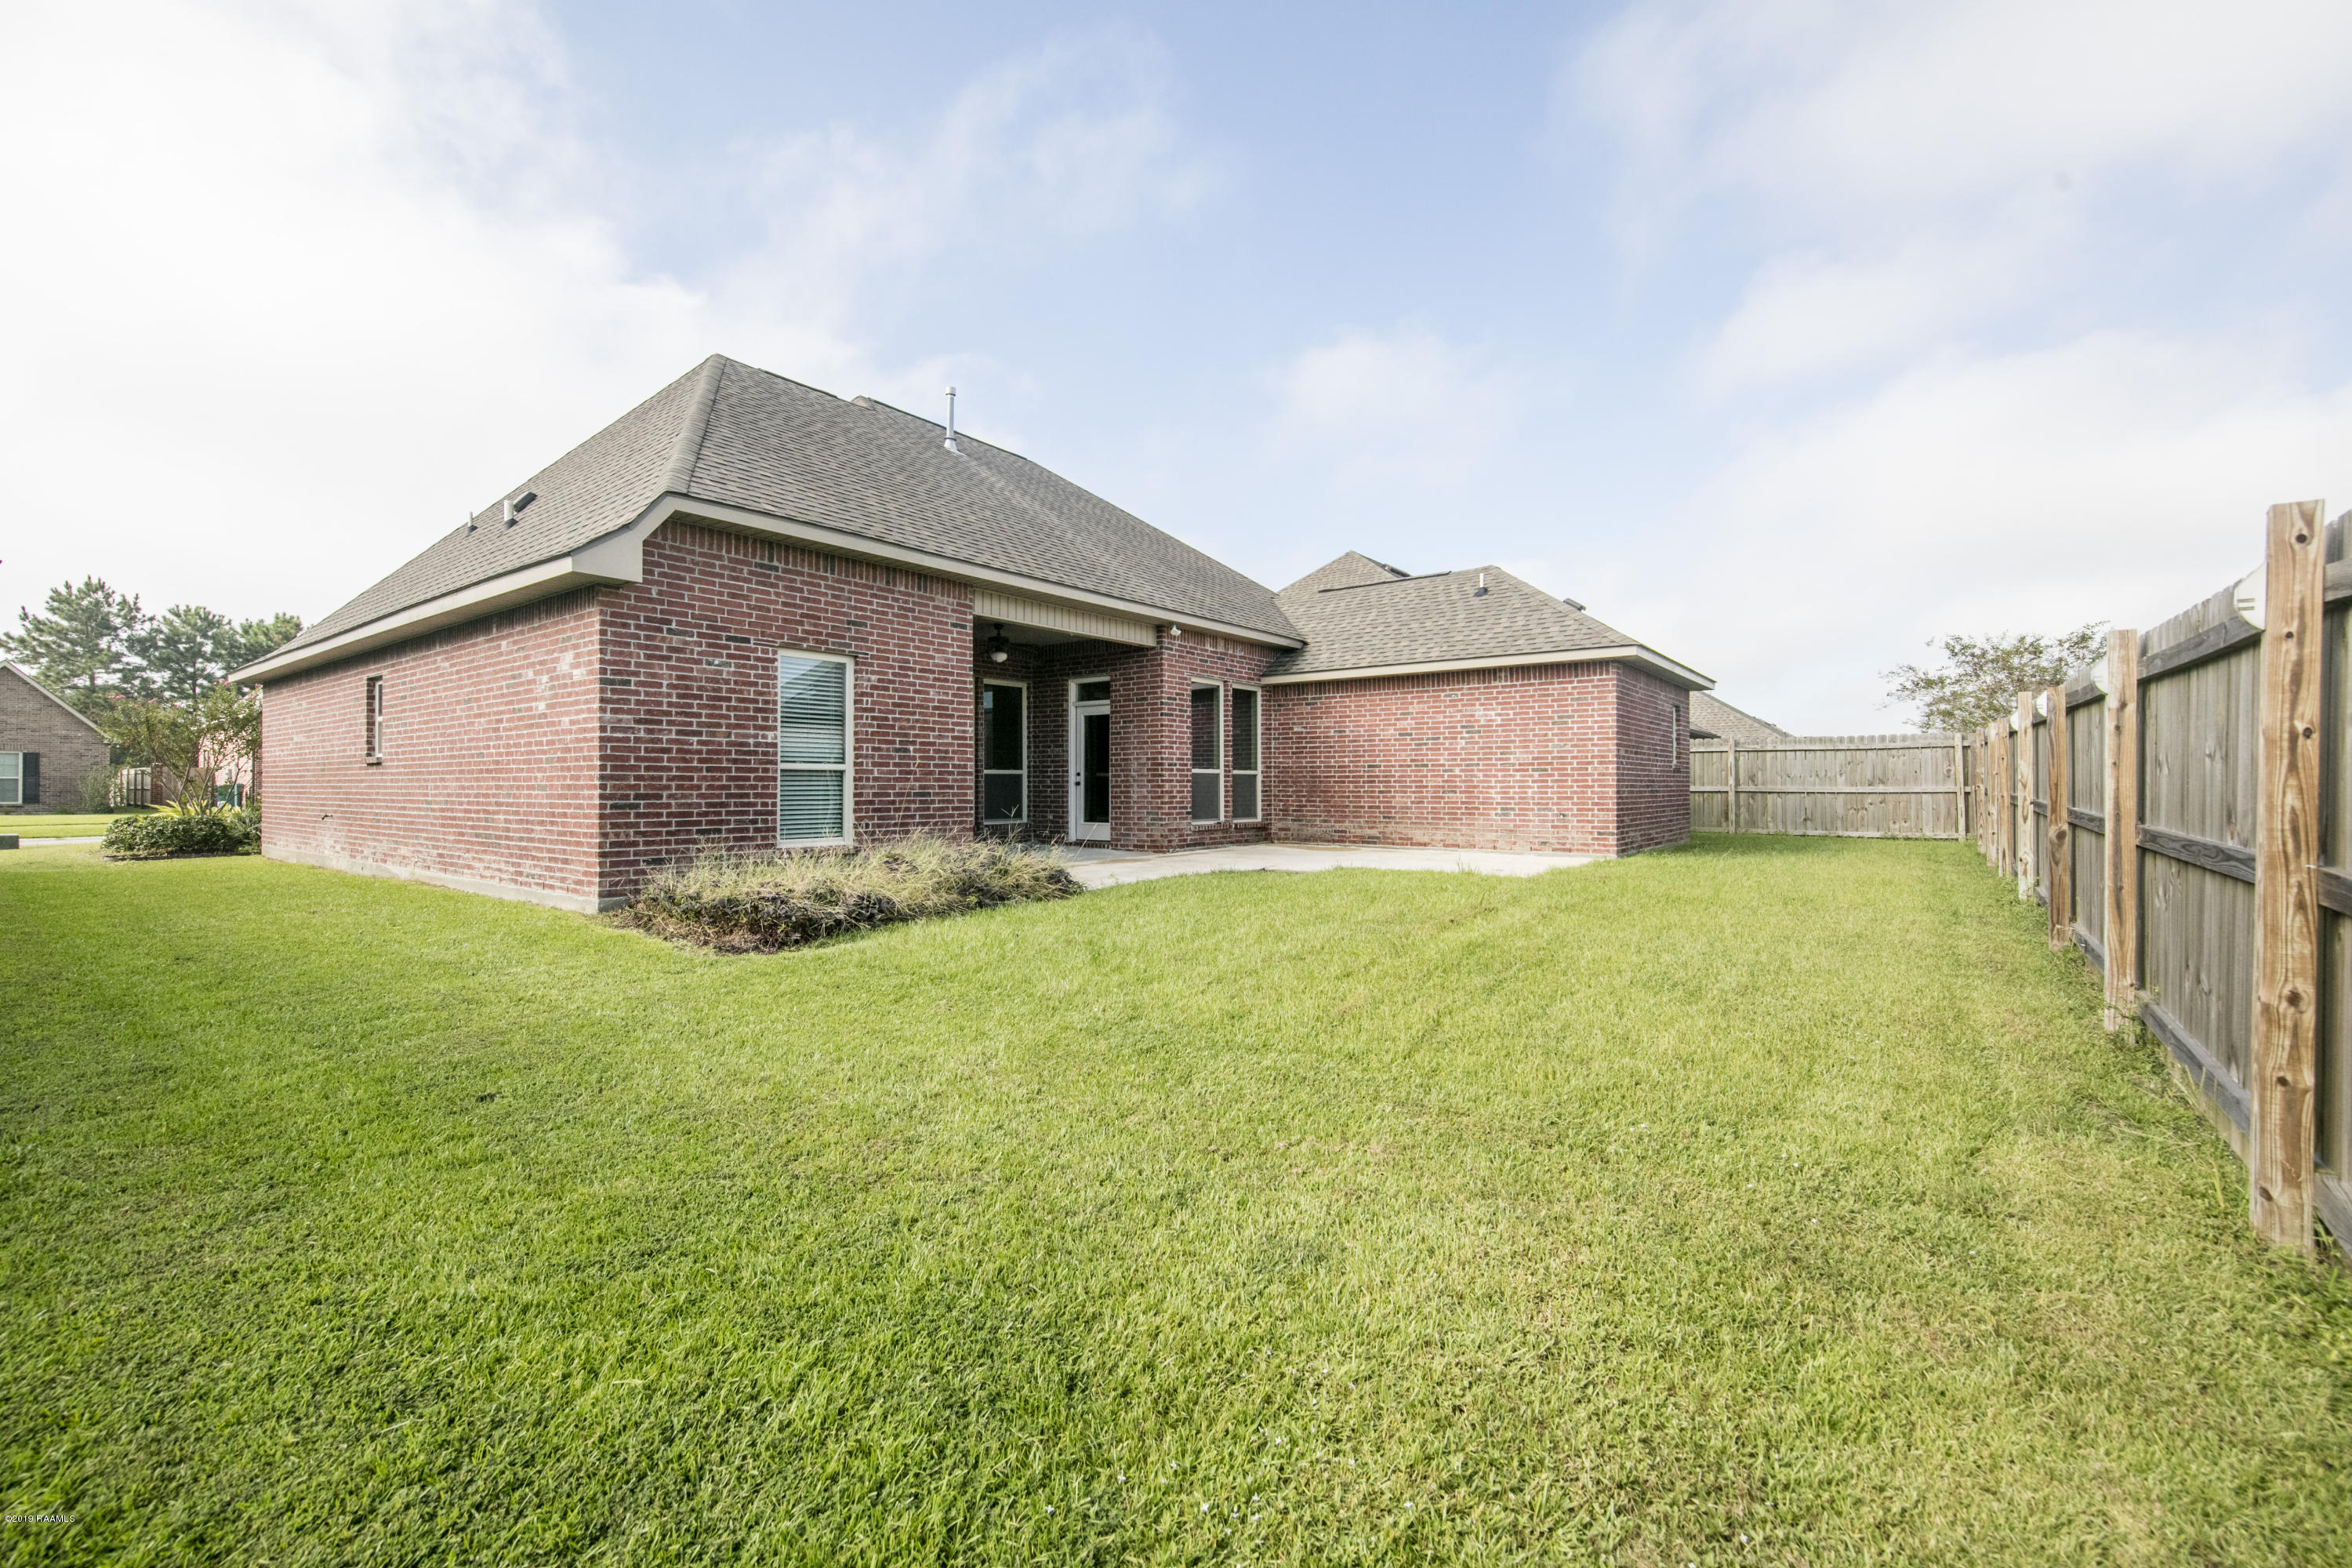 214 Woodhaven Road, Youngsville, LA 70592 Photo #9